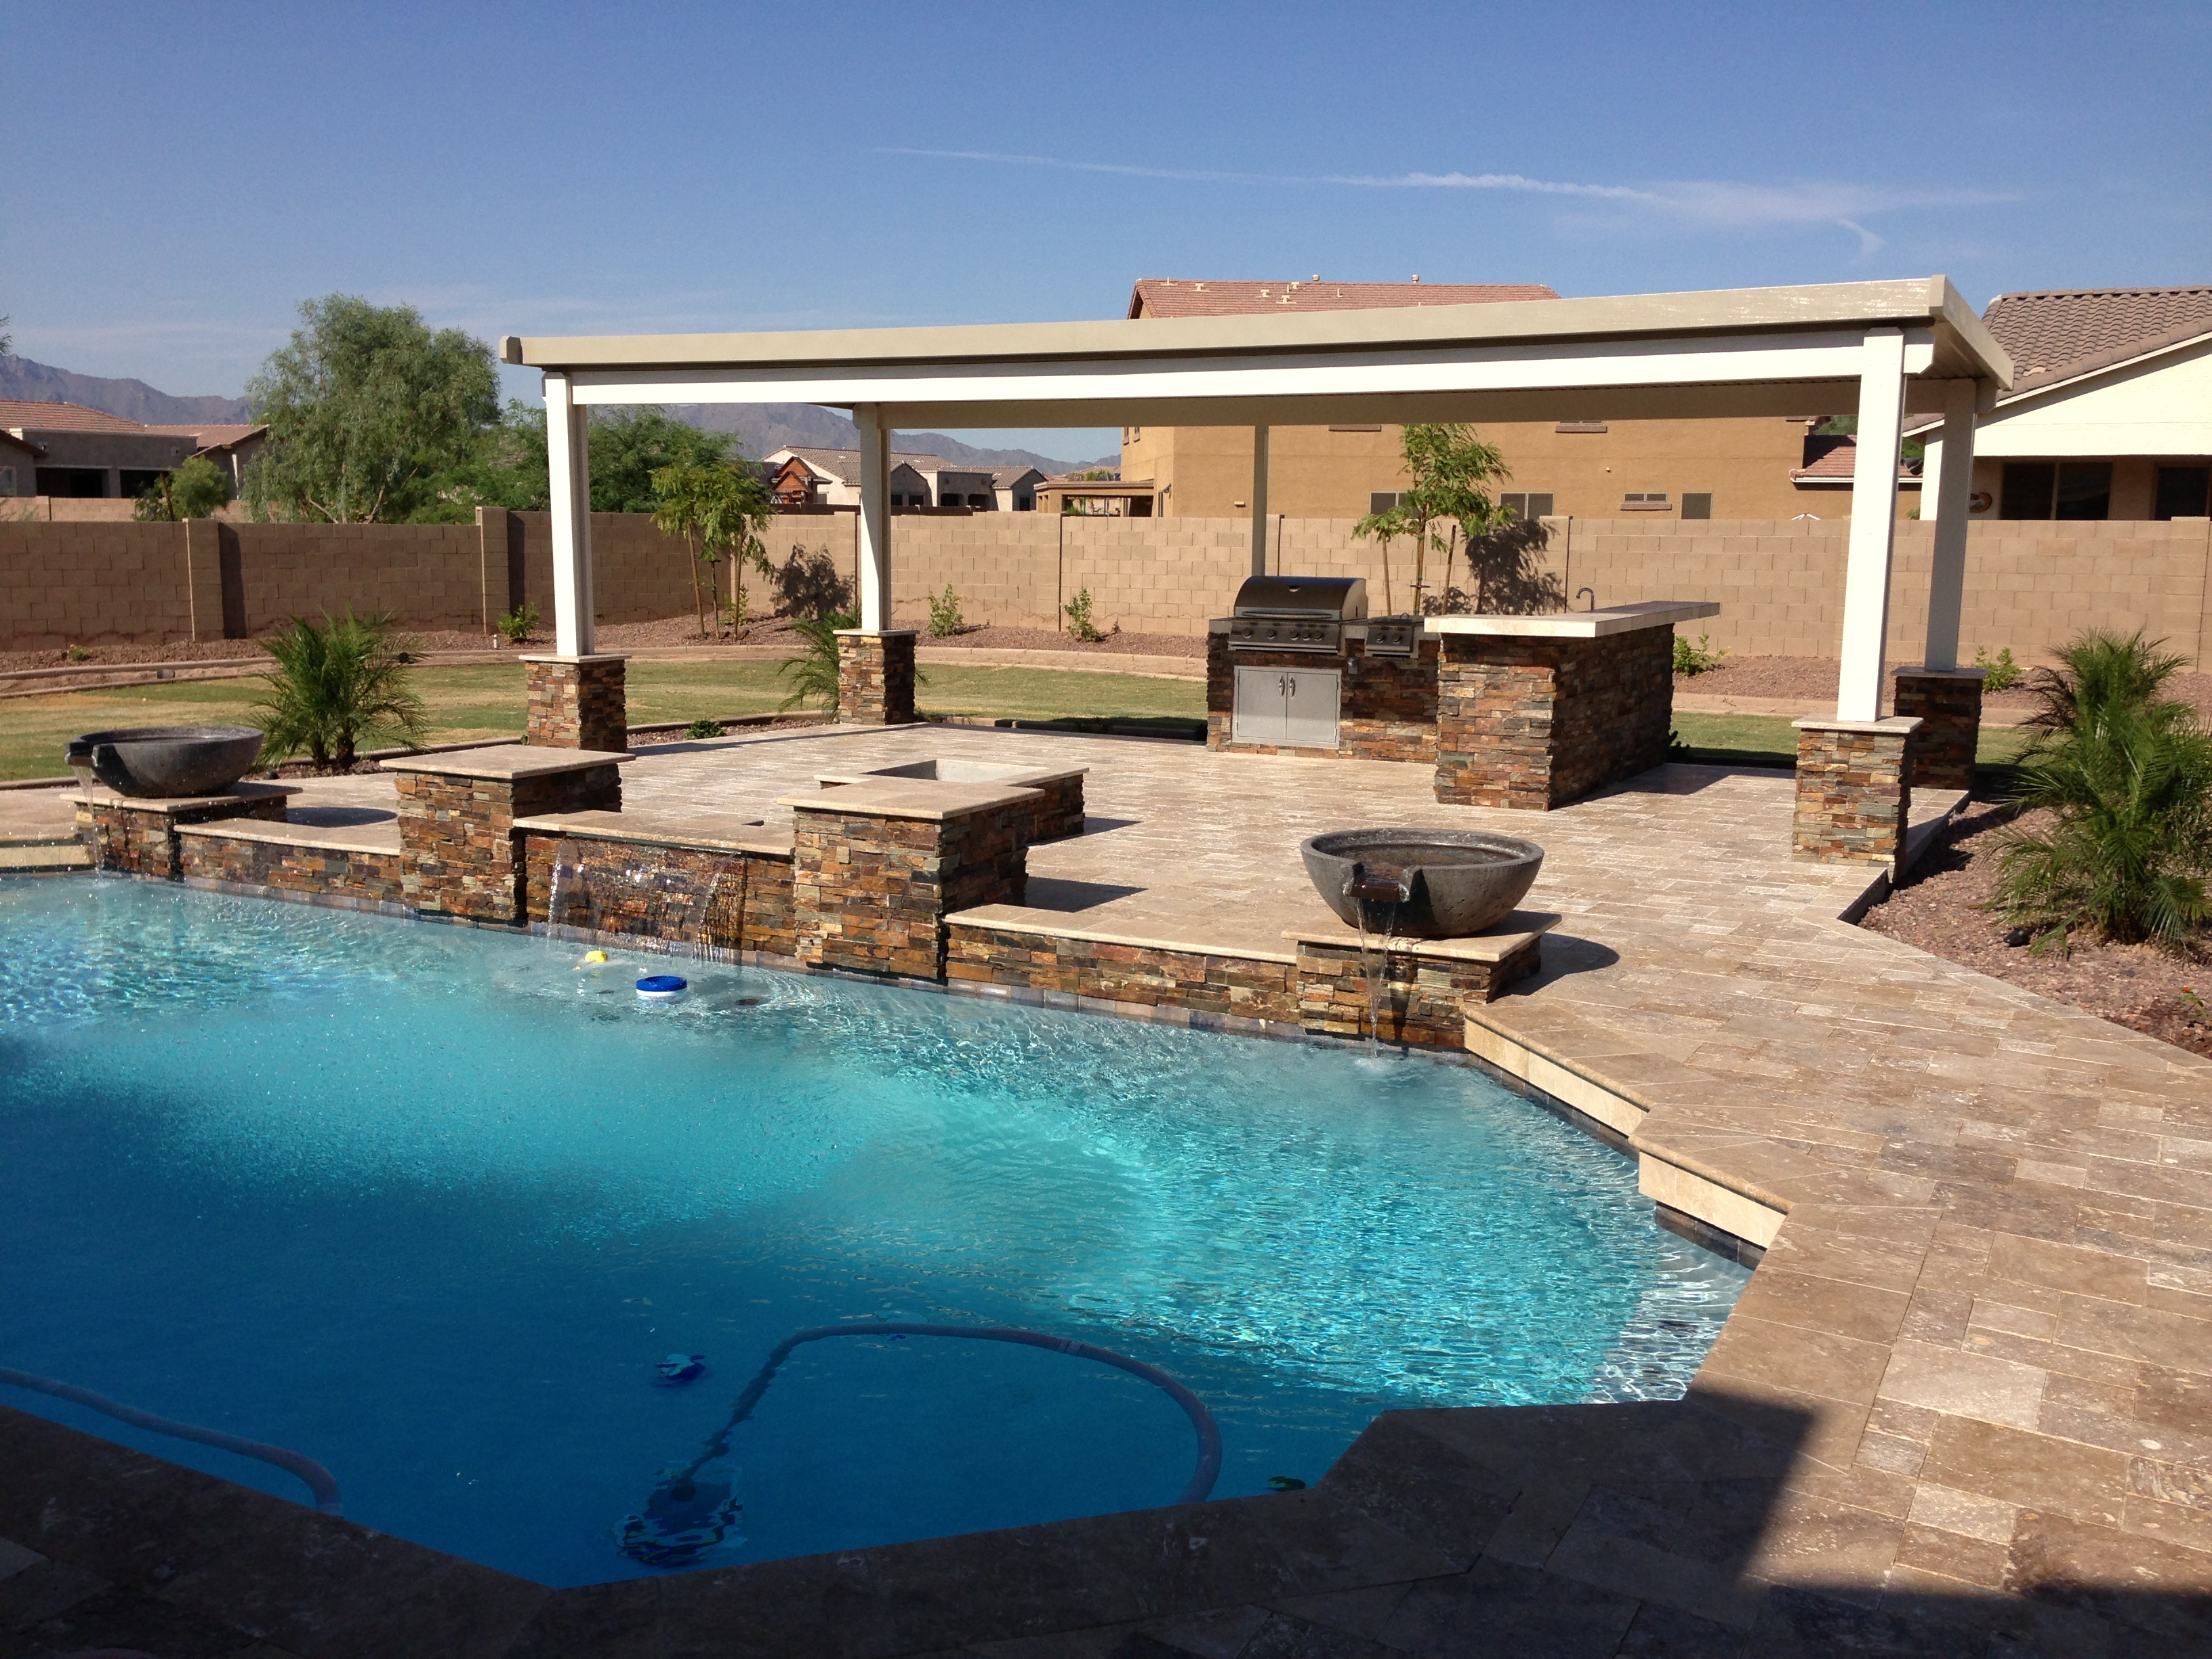 An Arizona Outdoor Living Space to Enjoy this Season on Outdoor Living And Landscapes id=60222